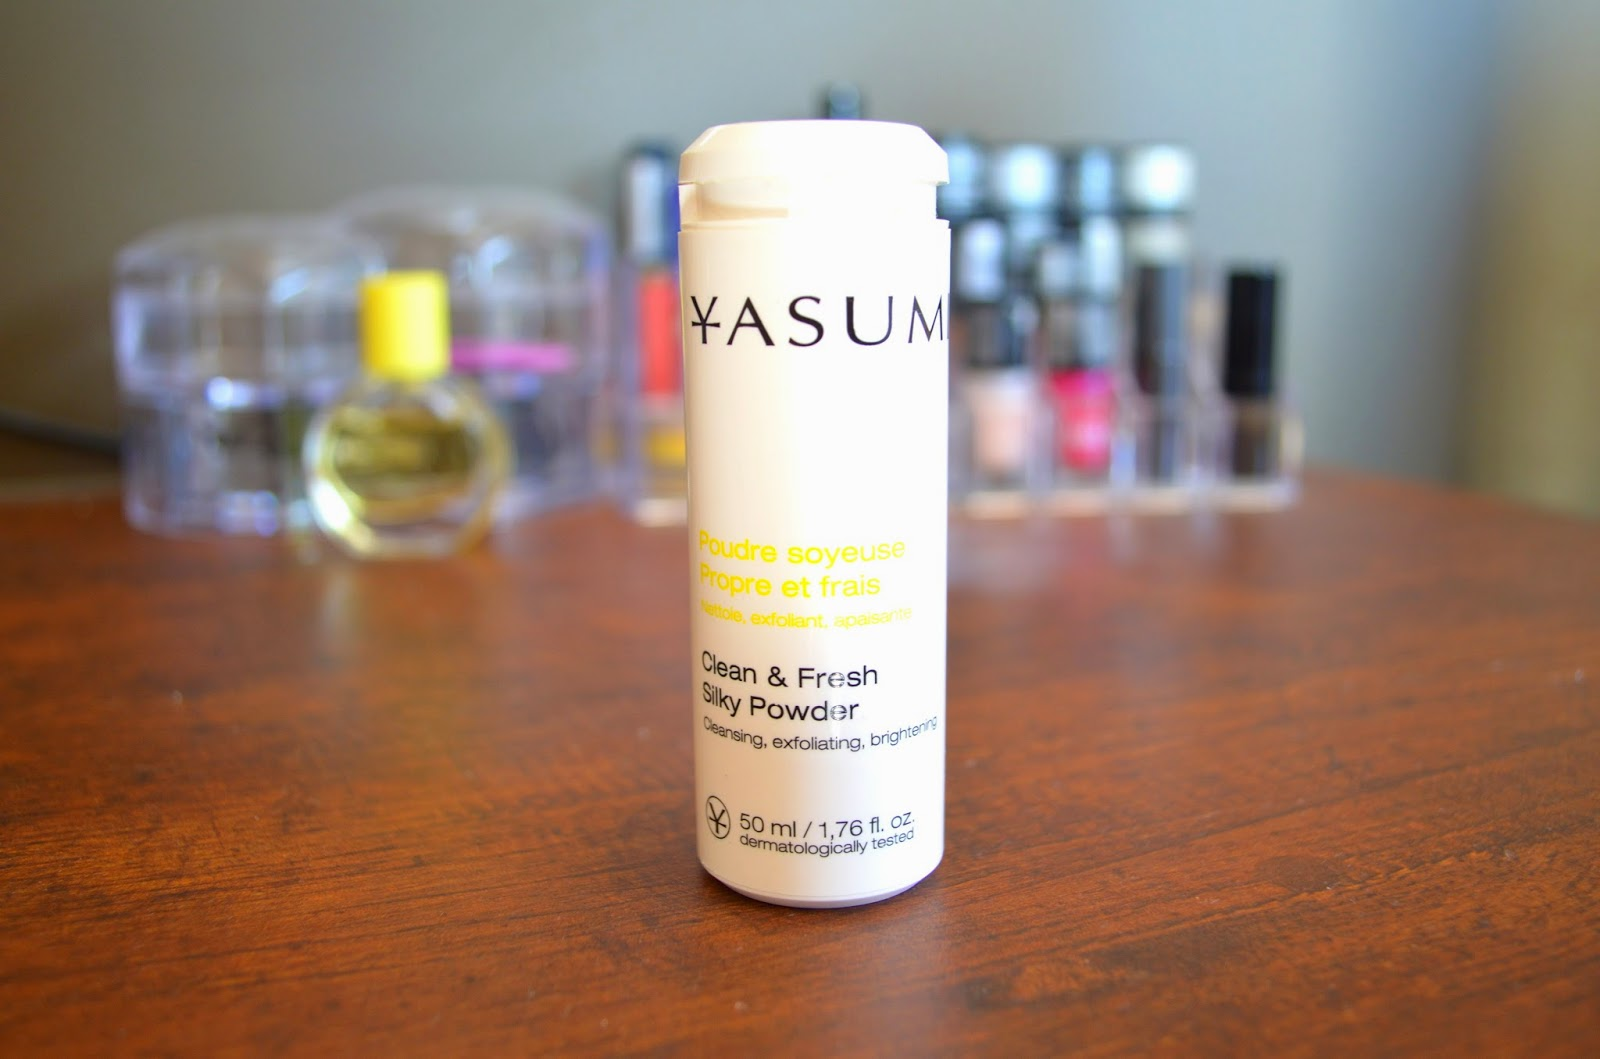 Yasumi - Clean & Fresh Silky Powder